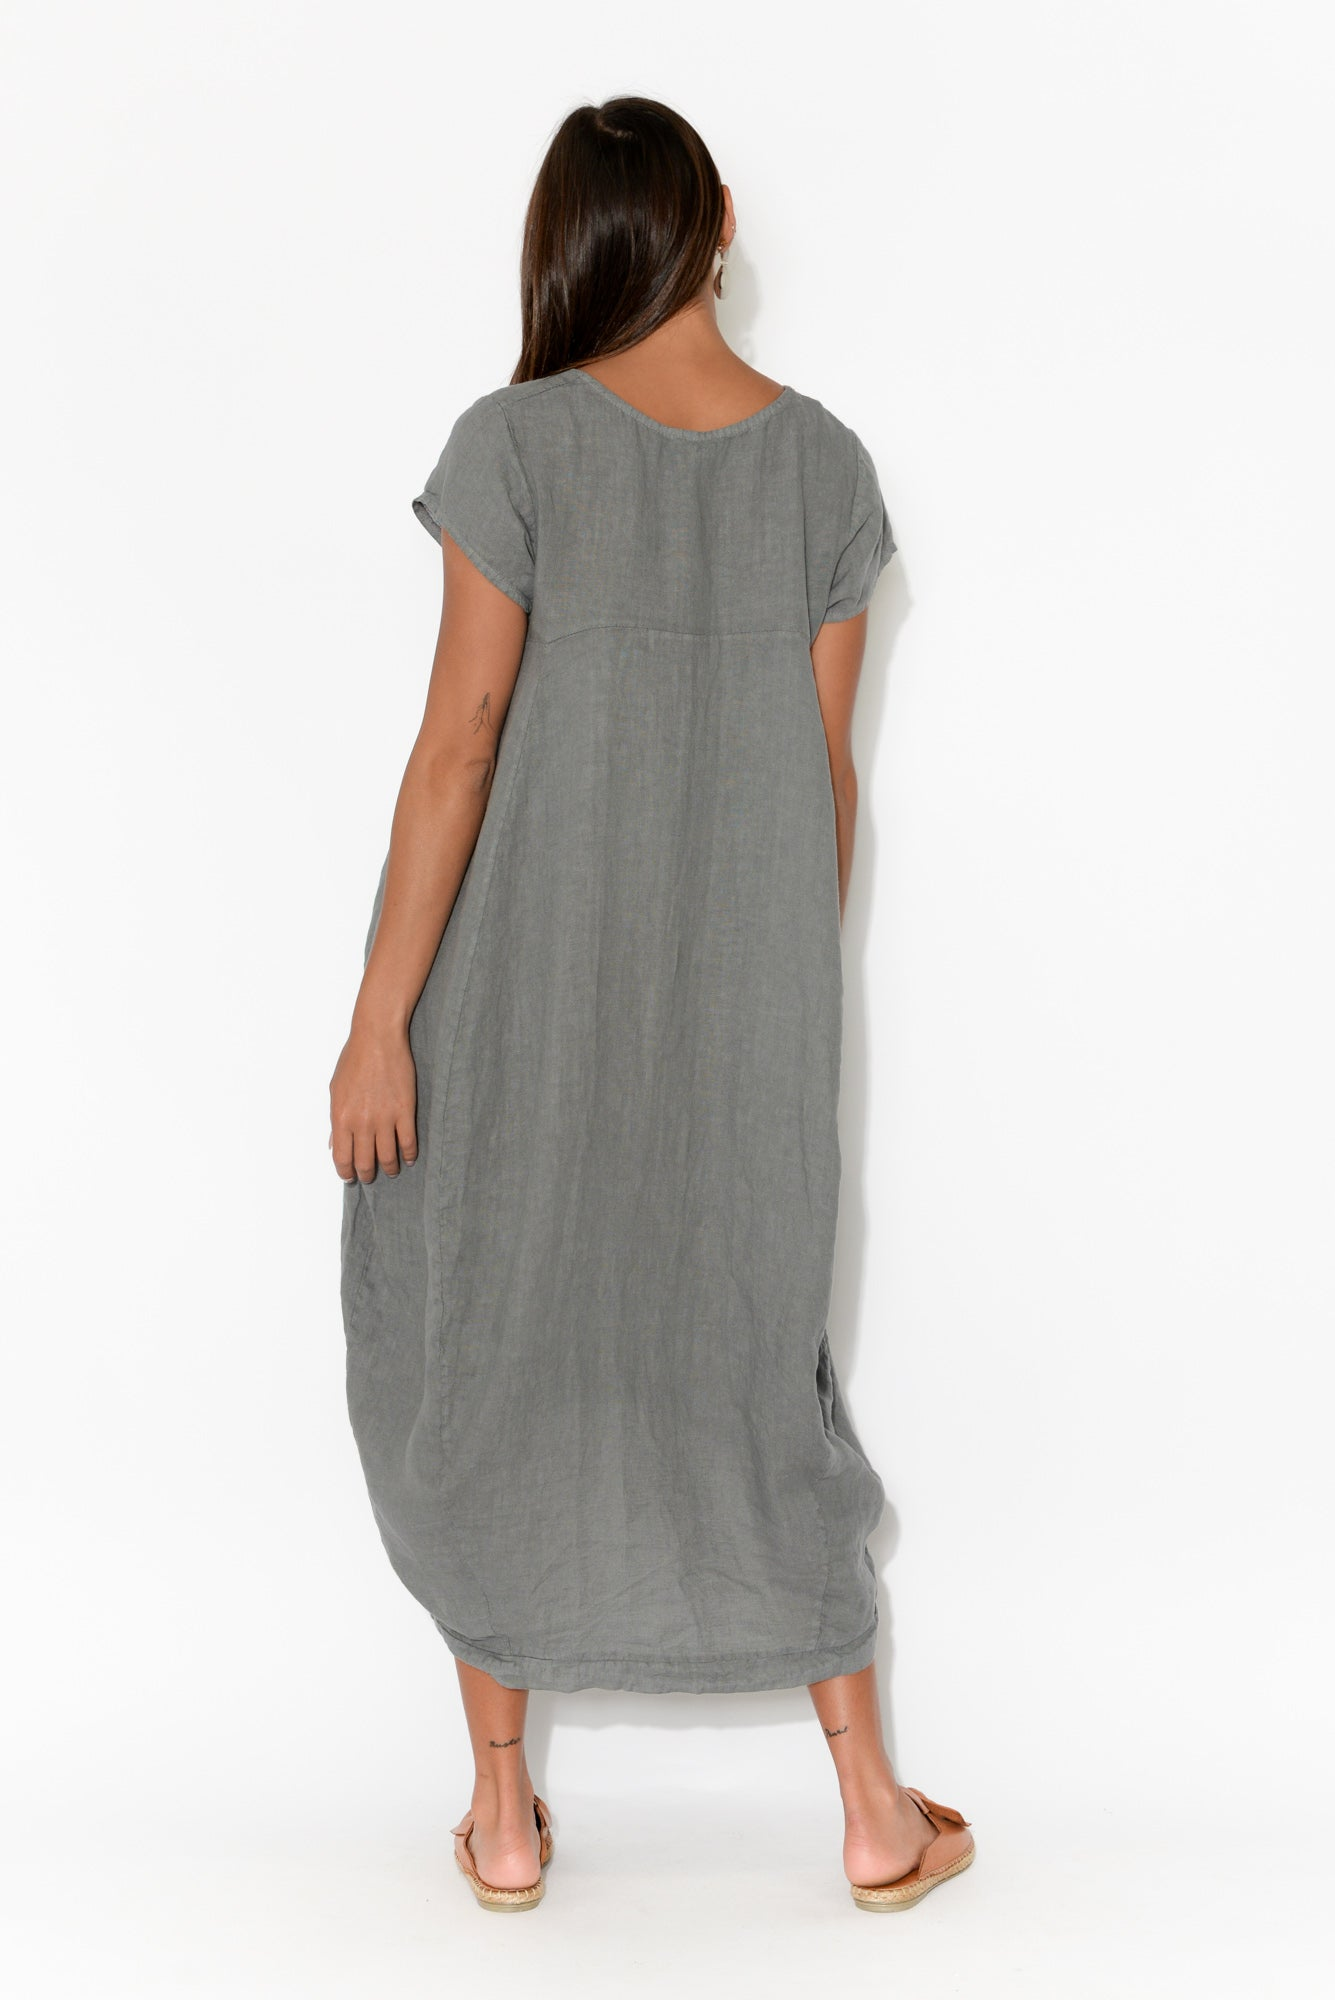 Verity Grey Linen Dress